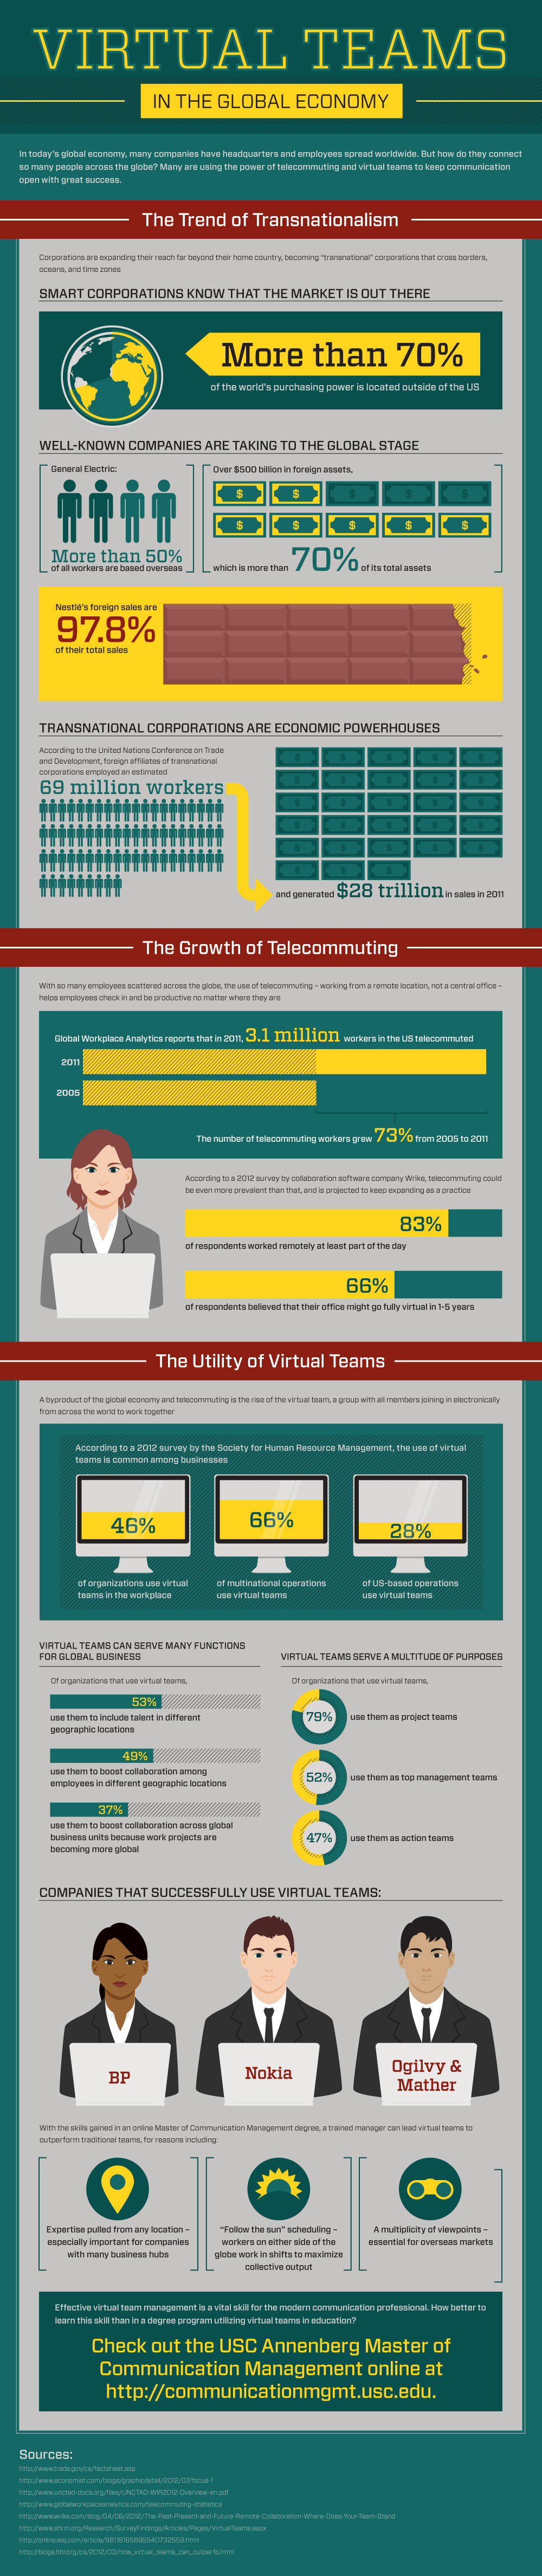 Infographic- Virtual Teams in the Global Economy